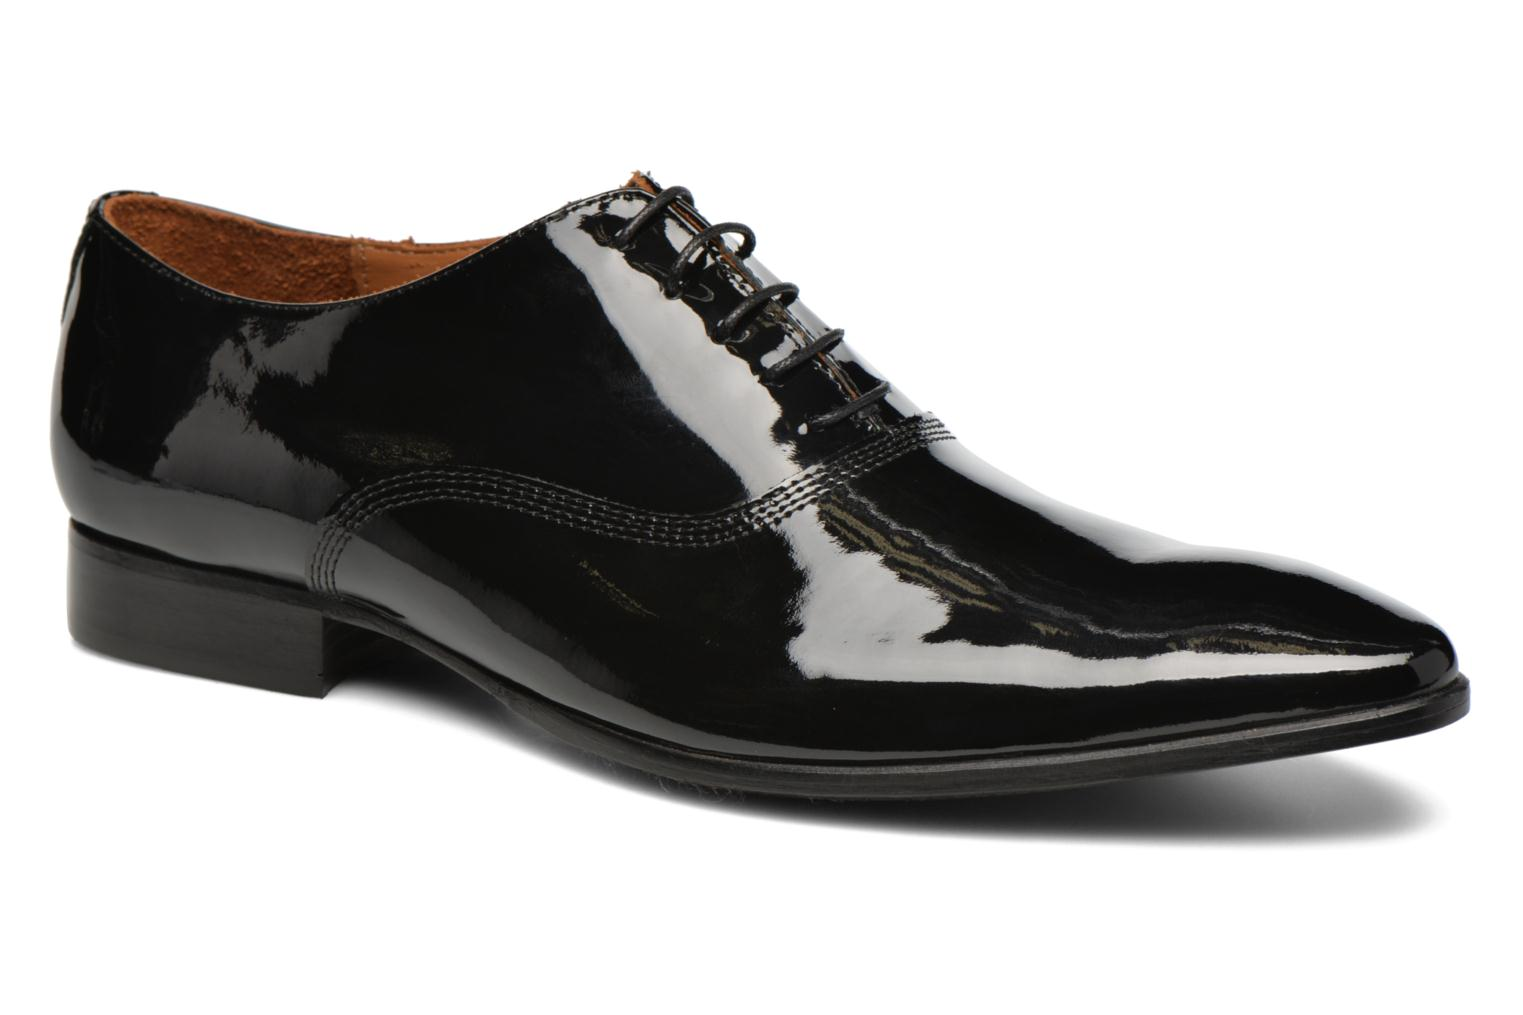 Marques Chaussure homme Marvin&Co homme Nottoning Vernice nero